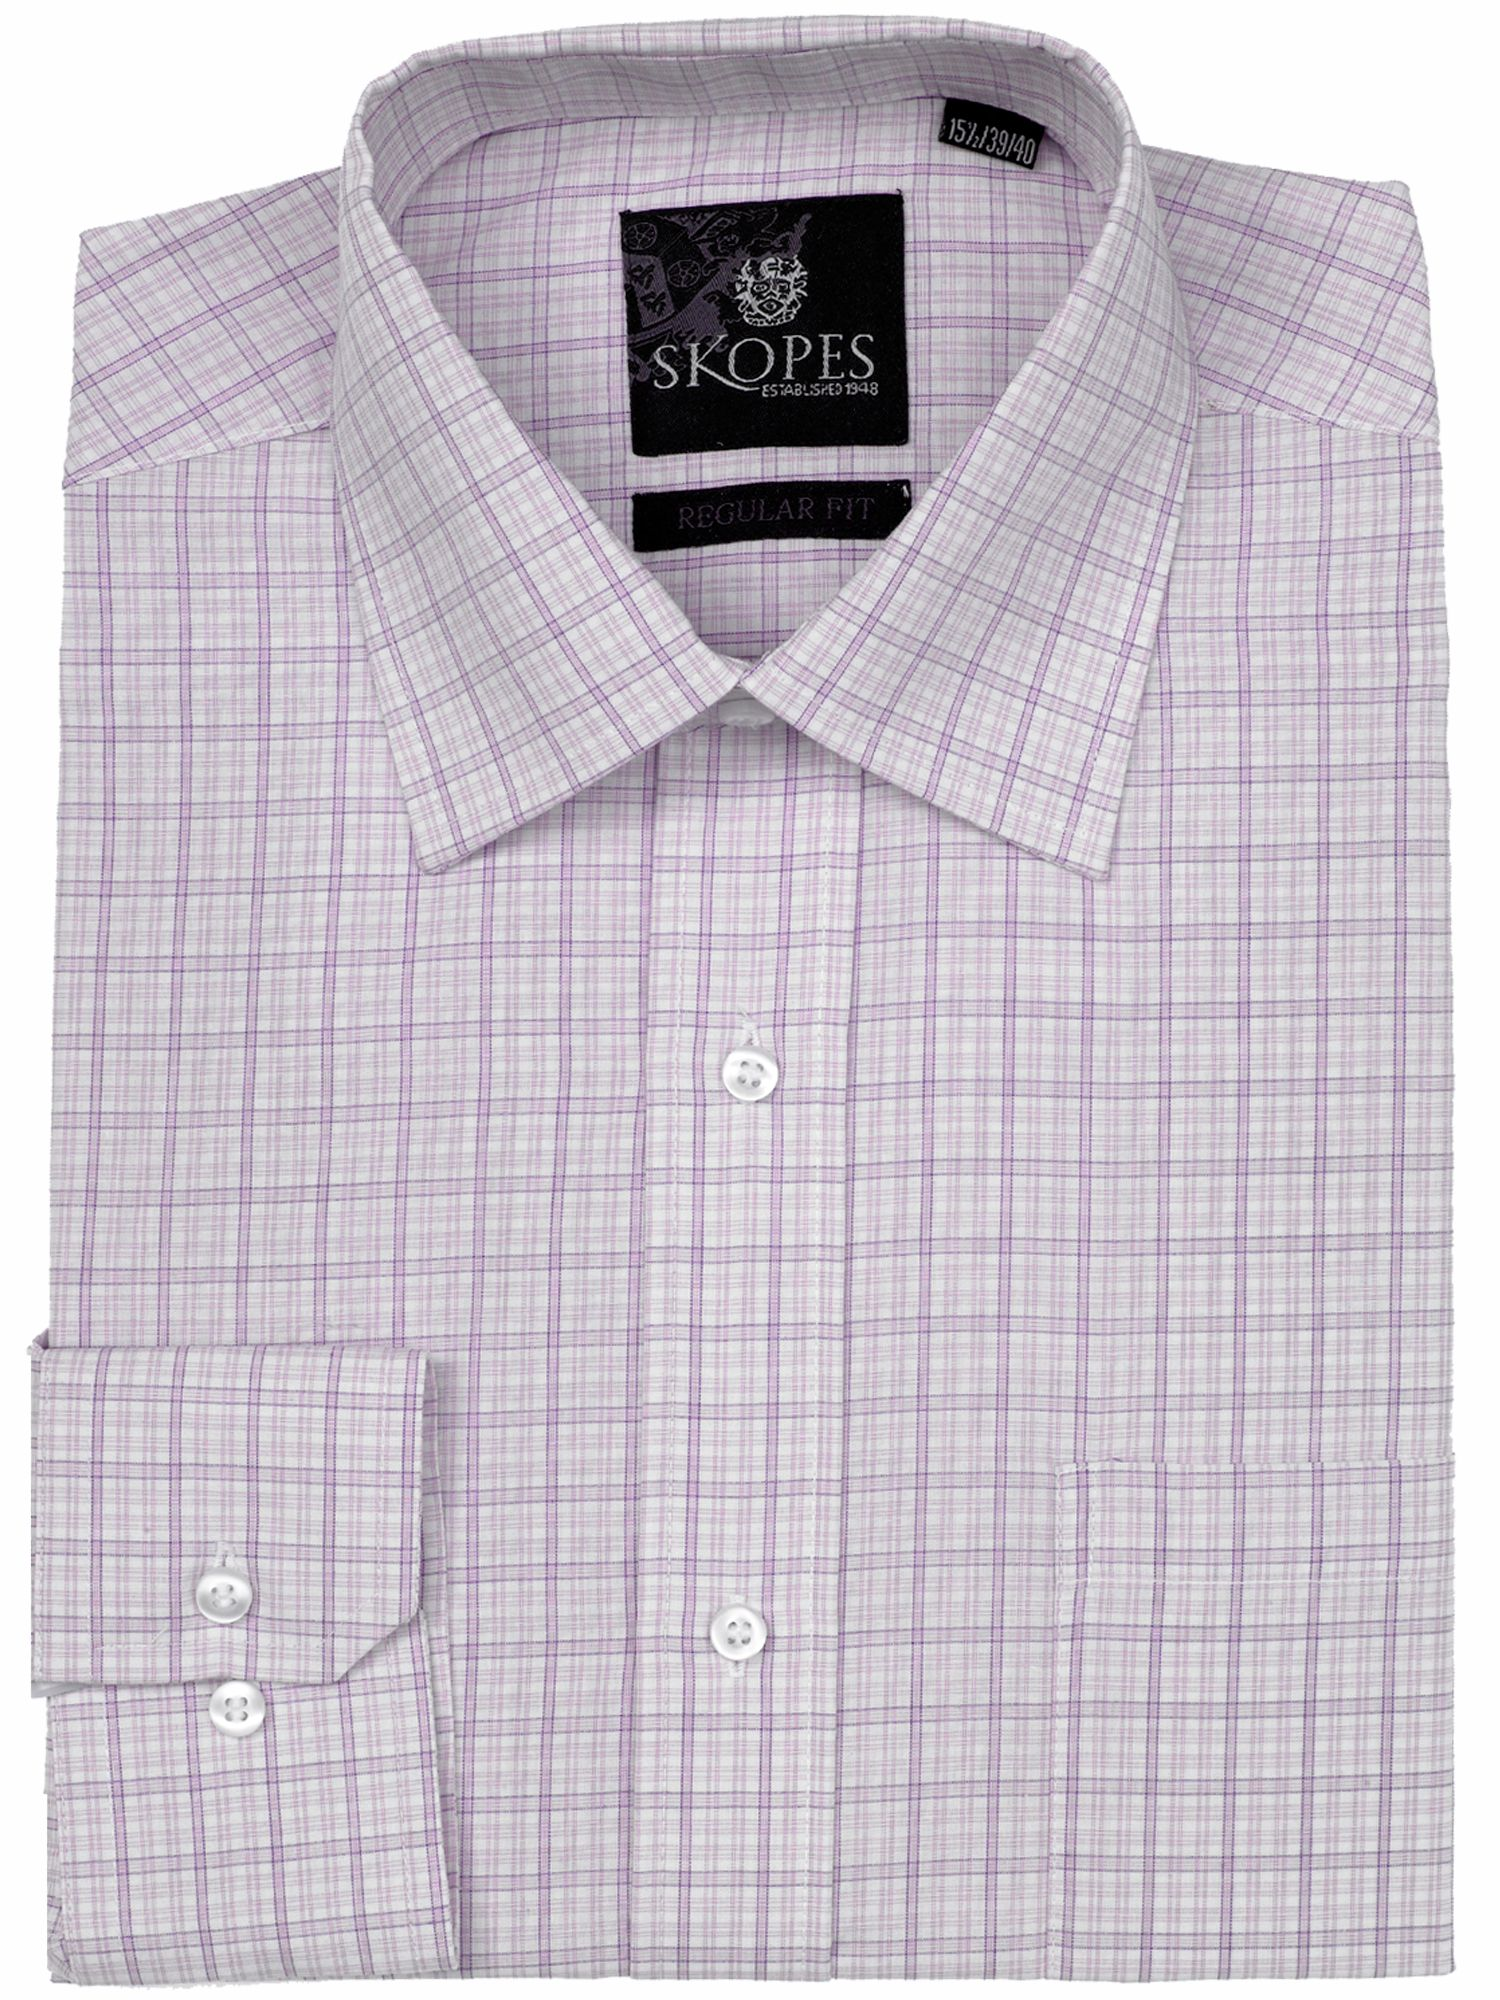 Easy care regular fit formal shirt